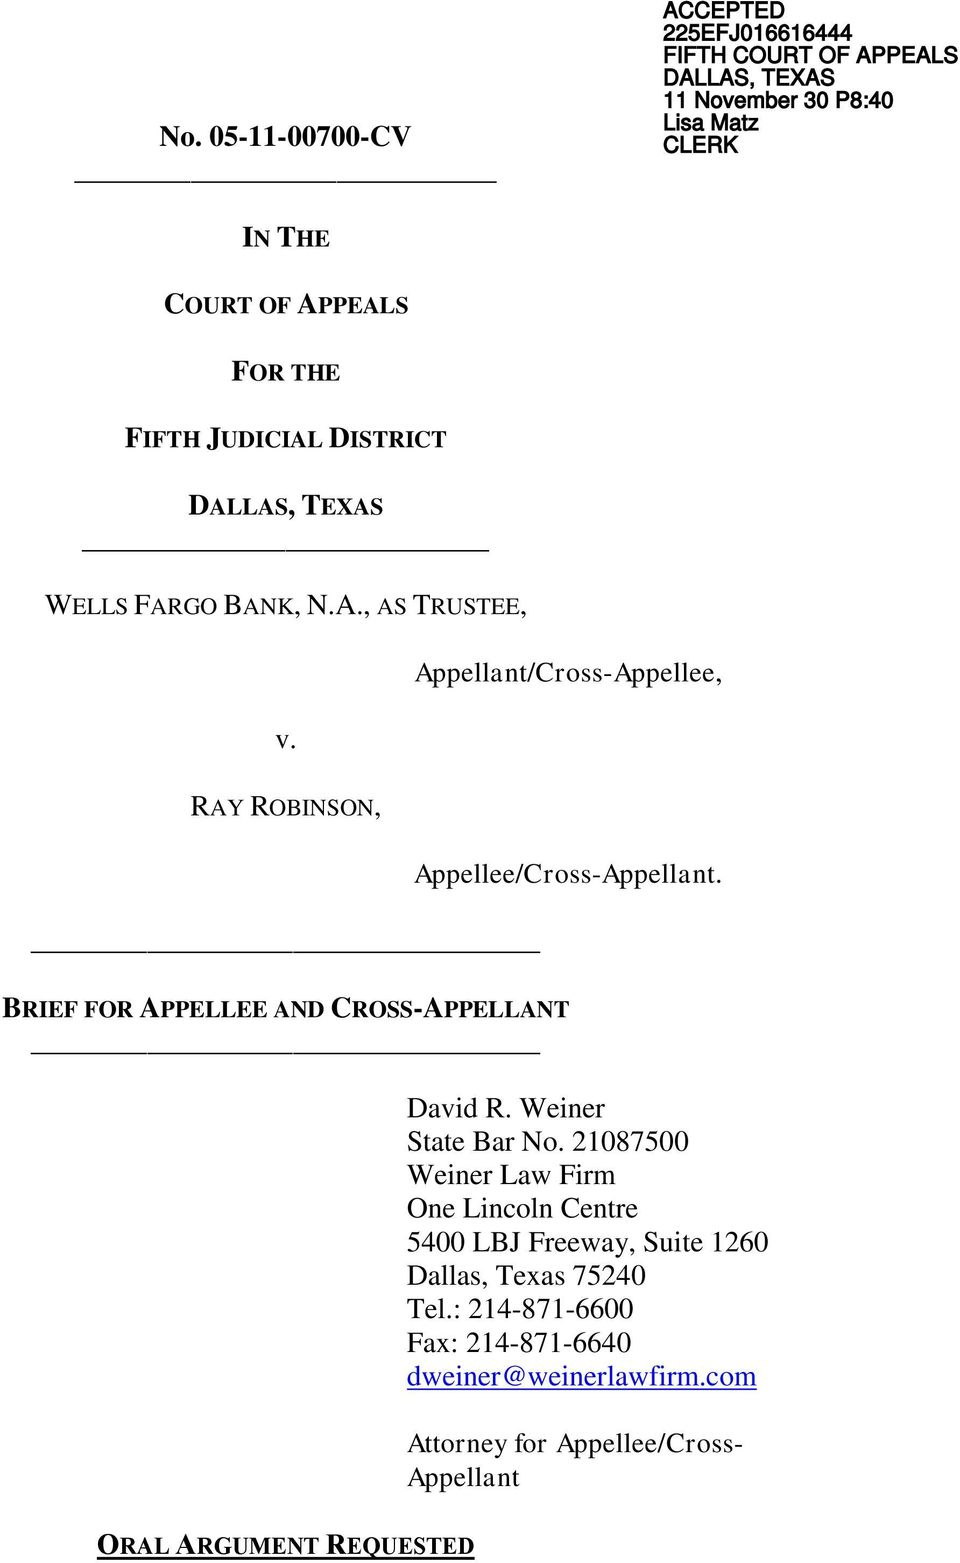 RAY ROBINSON, Appellant/Cross-Appellee, Appellee/Cross-Appellant. BRIEF FOR APPELLEE AND CROSS-APPELLANT David R. Weiner State Bar No.